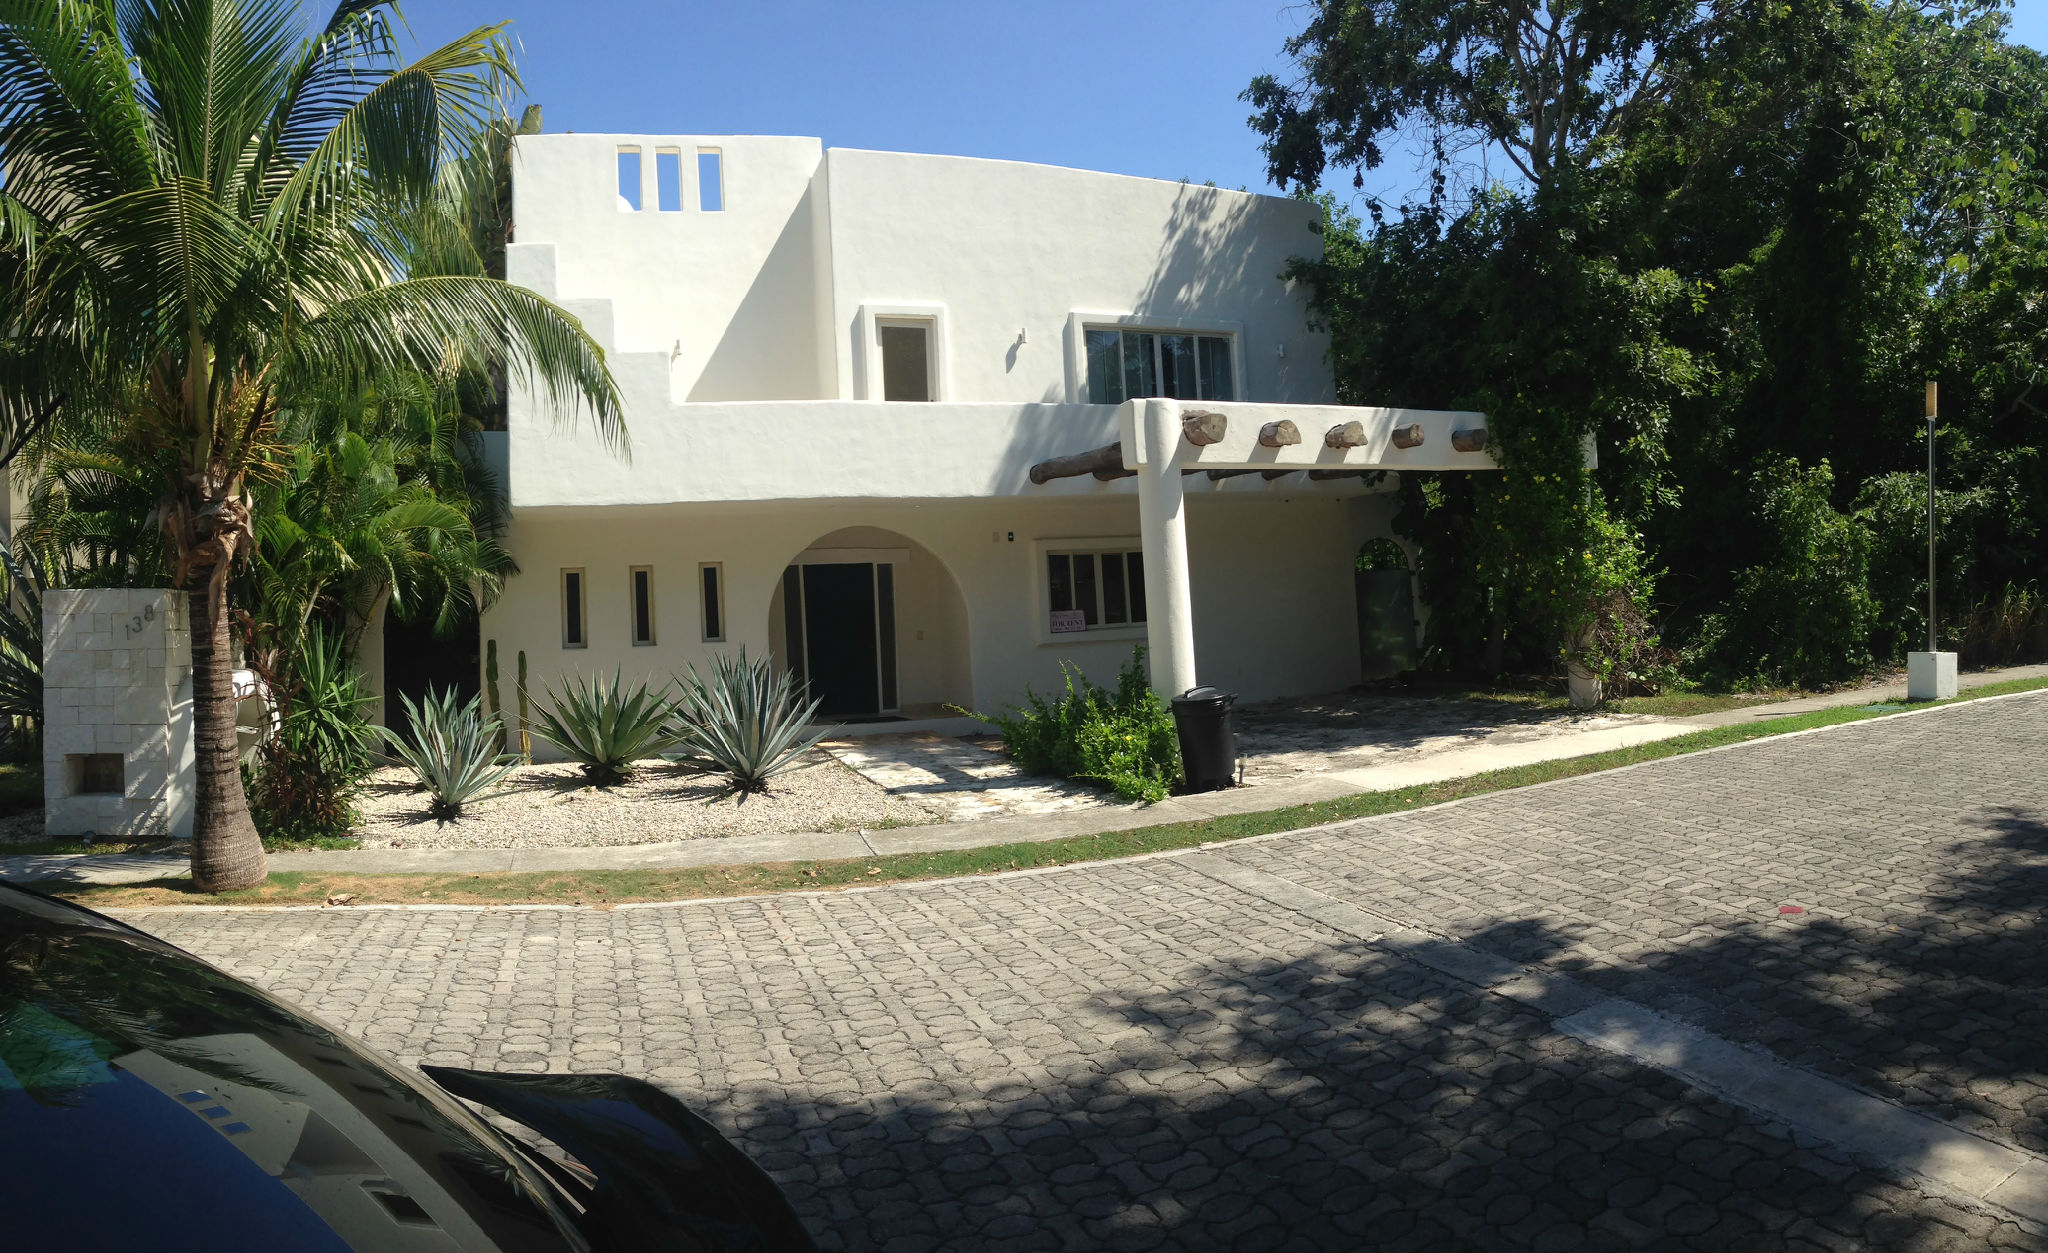 House for sale in Playacar 2 with golf course view property for sale